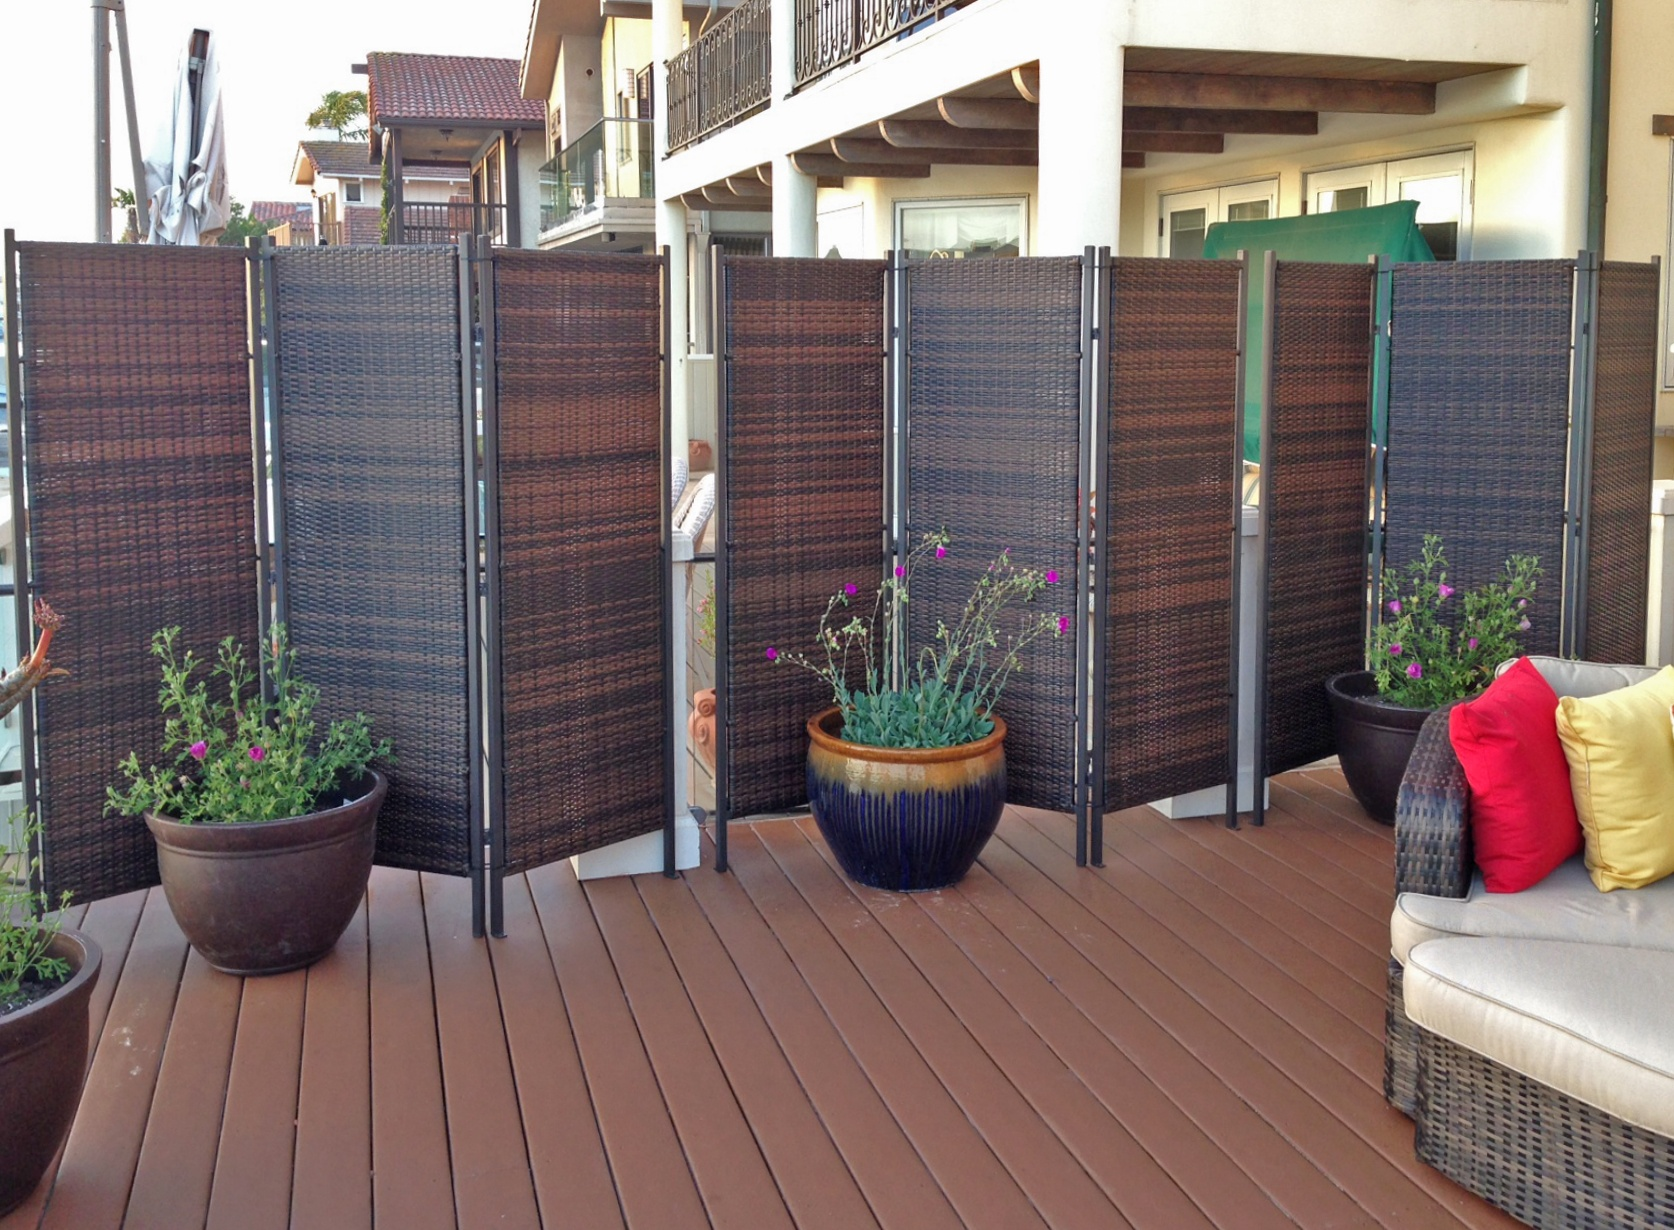 more privacy for your deck or patio amazing decks. Black Bedroom Furniture Sets. Home Design Ideas